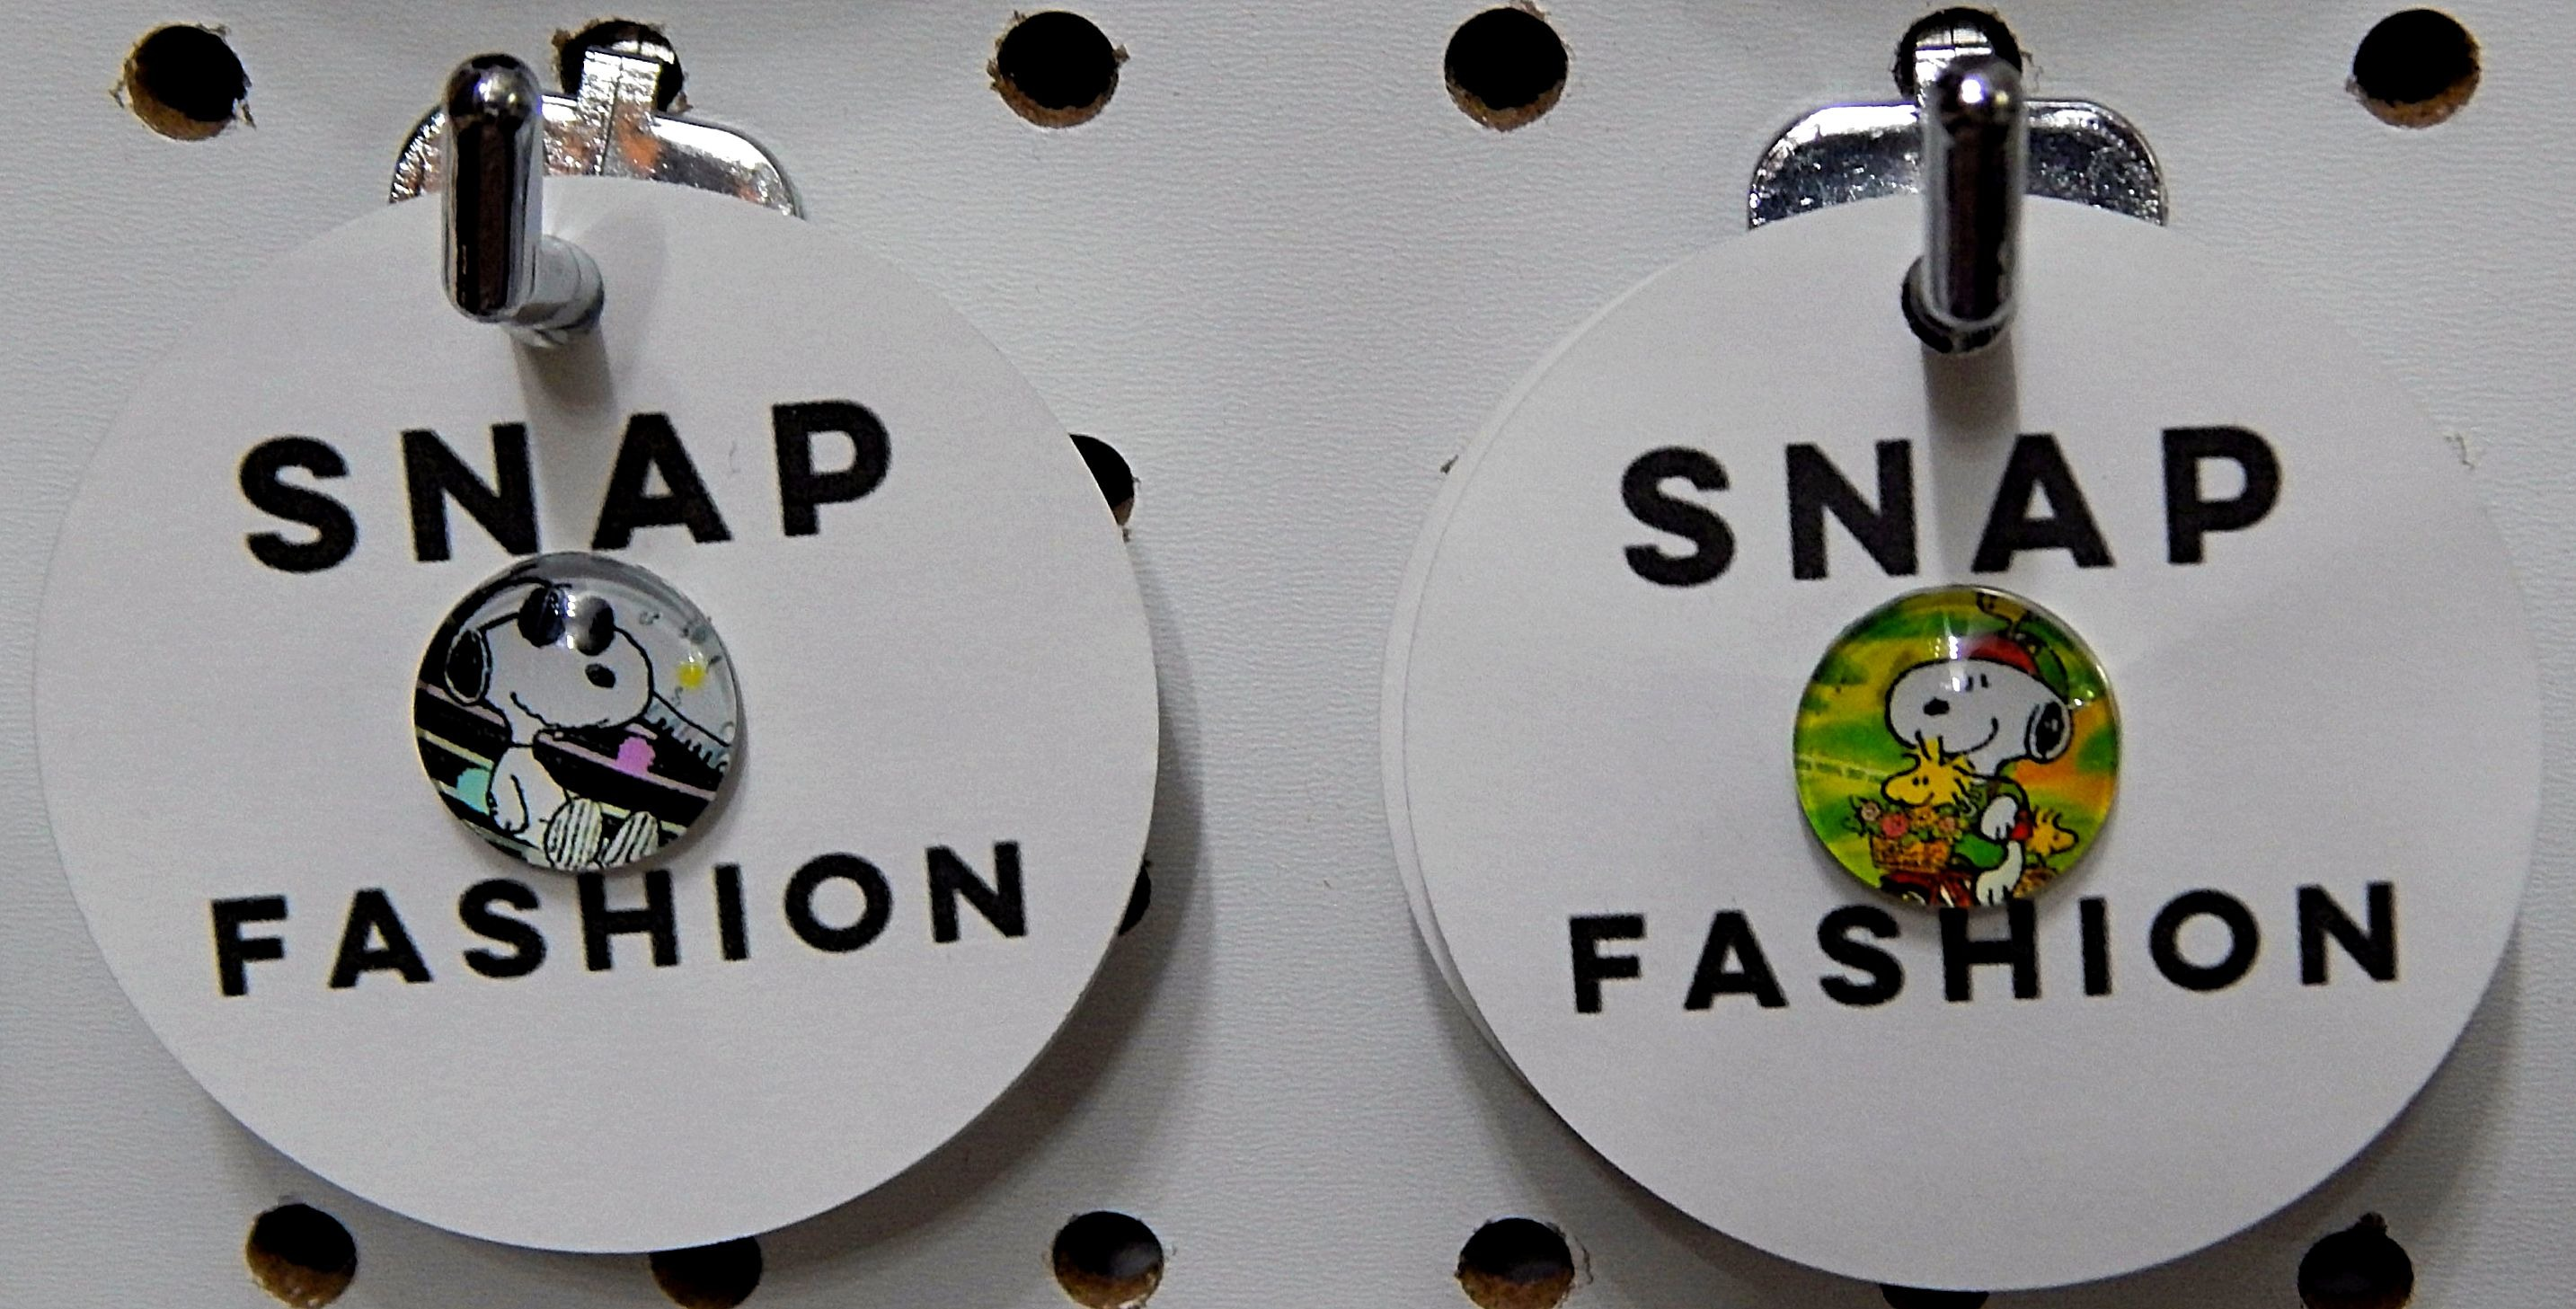 Snap Fashion Interchangeable Jewelry